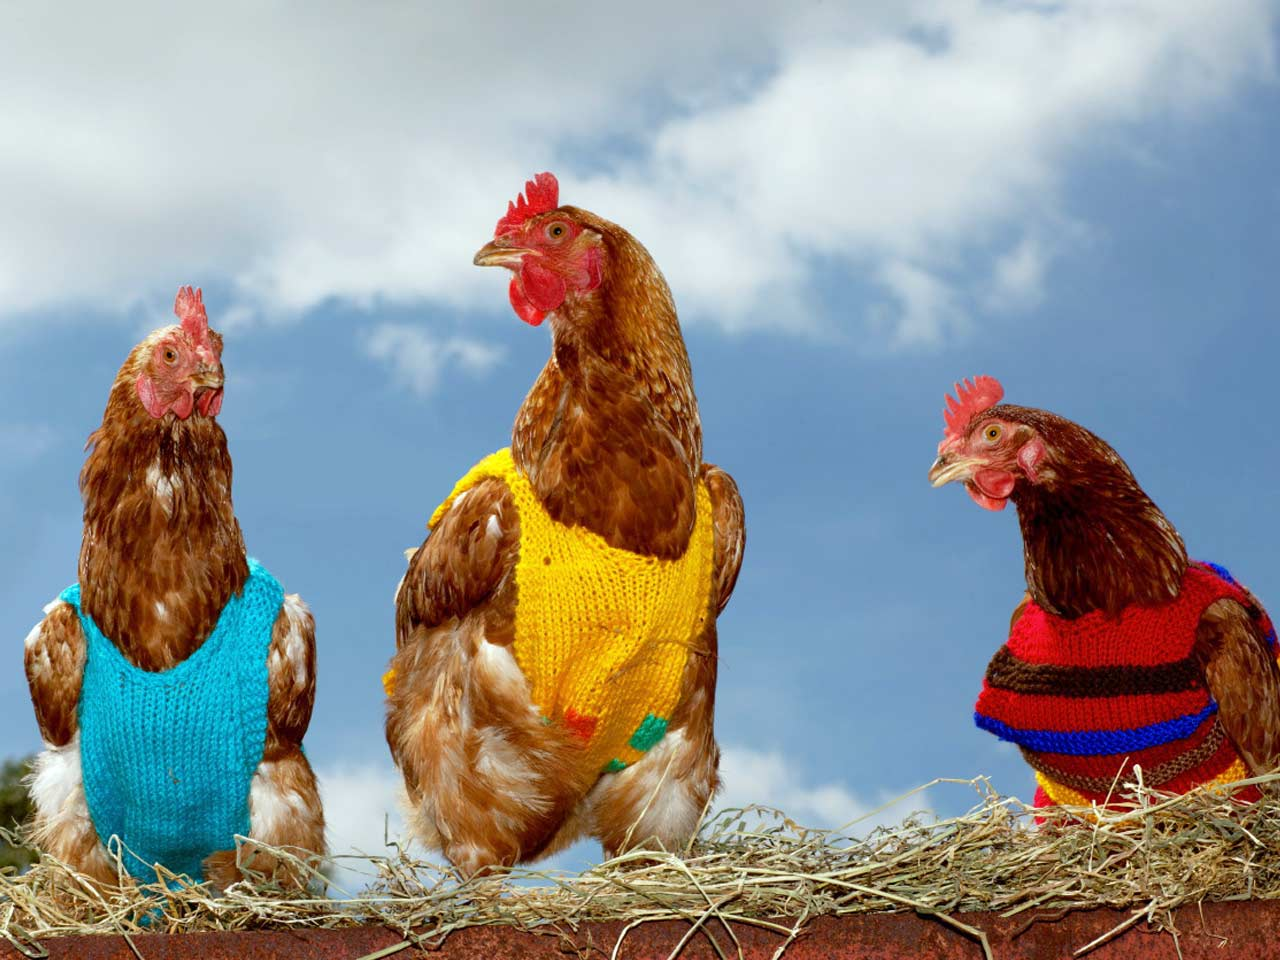 Chickens in vests